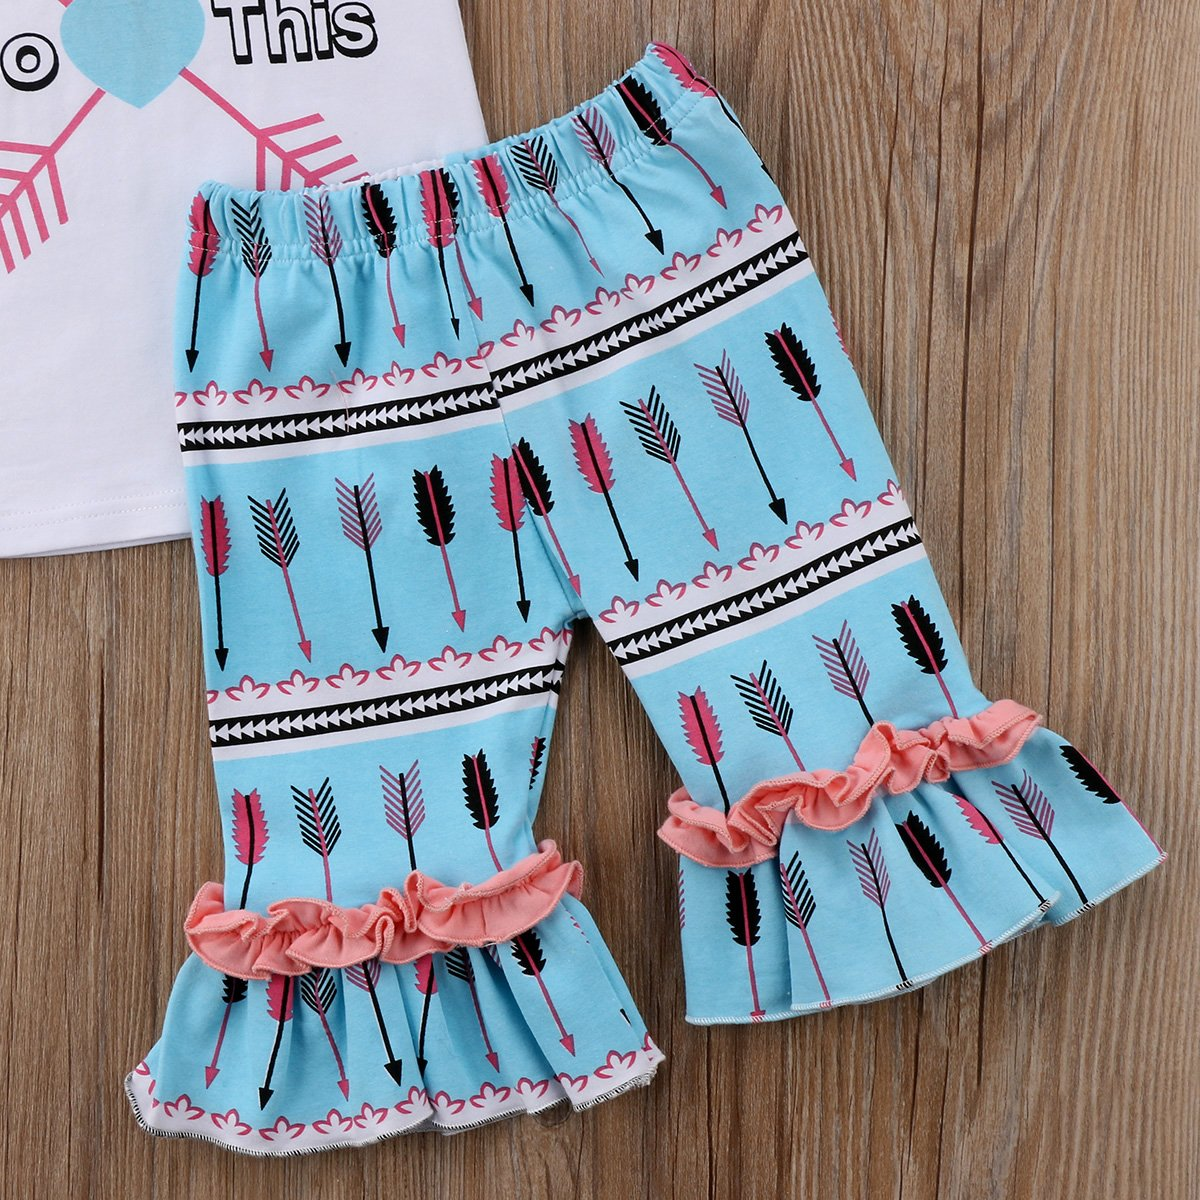 ThreeC Kids Little Girls Short Sleeve Letter T-Shirt and Arrows Ruffle Capri Legging Pants Outfit Set